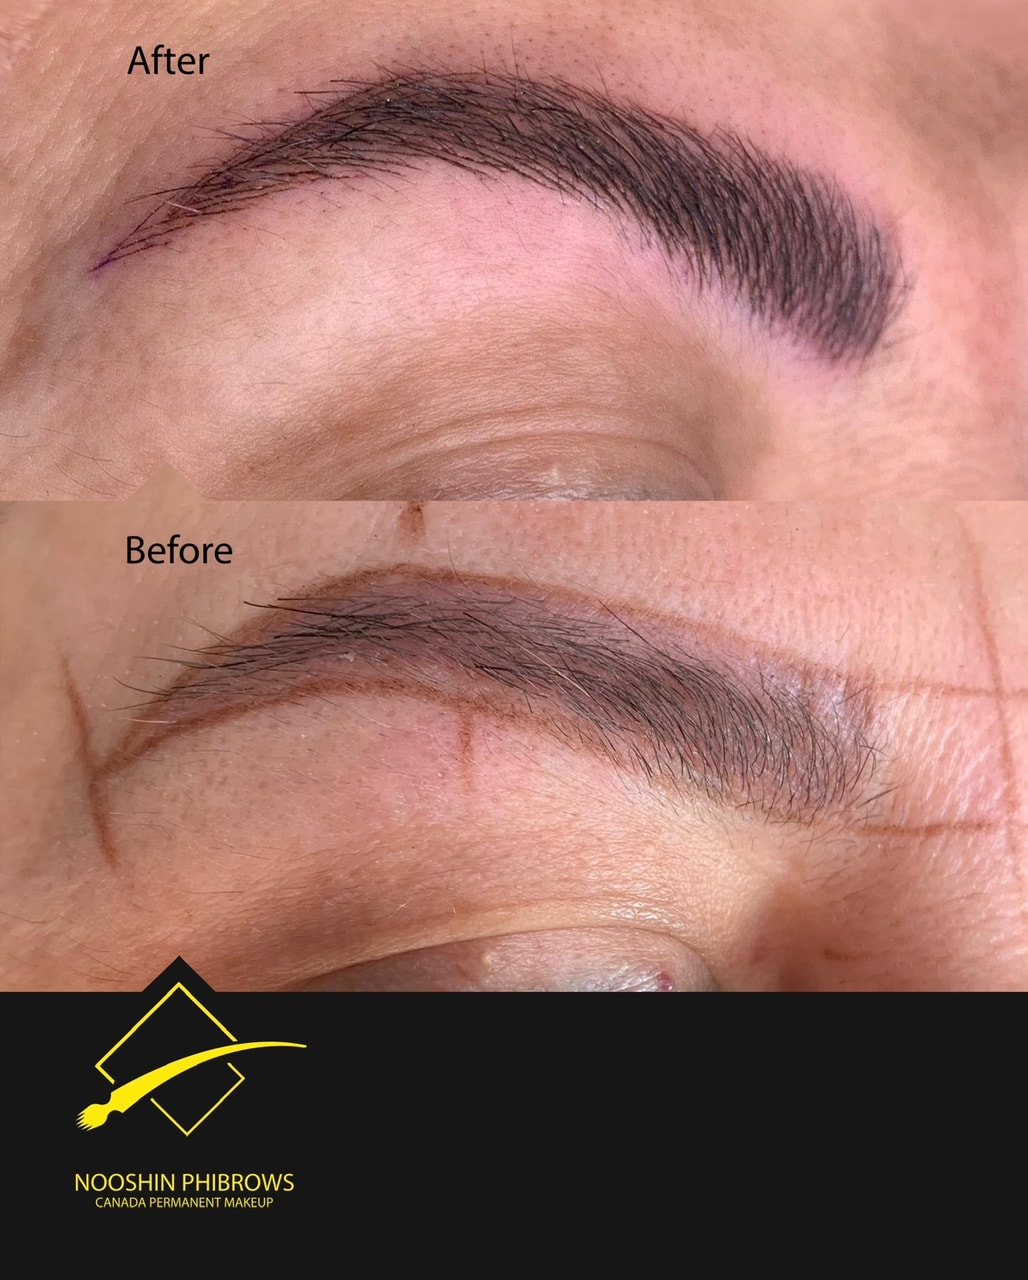 What is eyebrow Phibrows and how is it done? – Microblading – Canada Makeup – eyebrow Phibrows – IMG 4564 min – Canada Makeup – NOOSHIN JAVAHERIAN